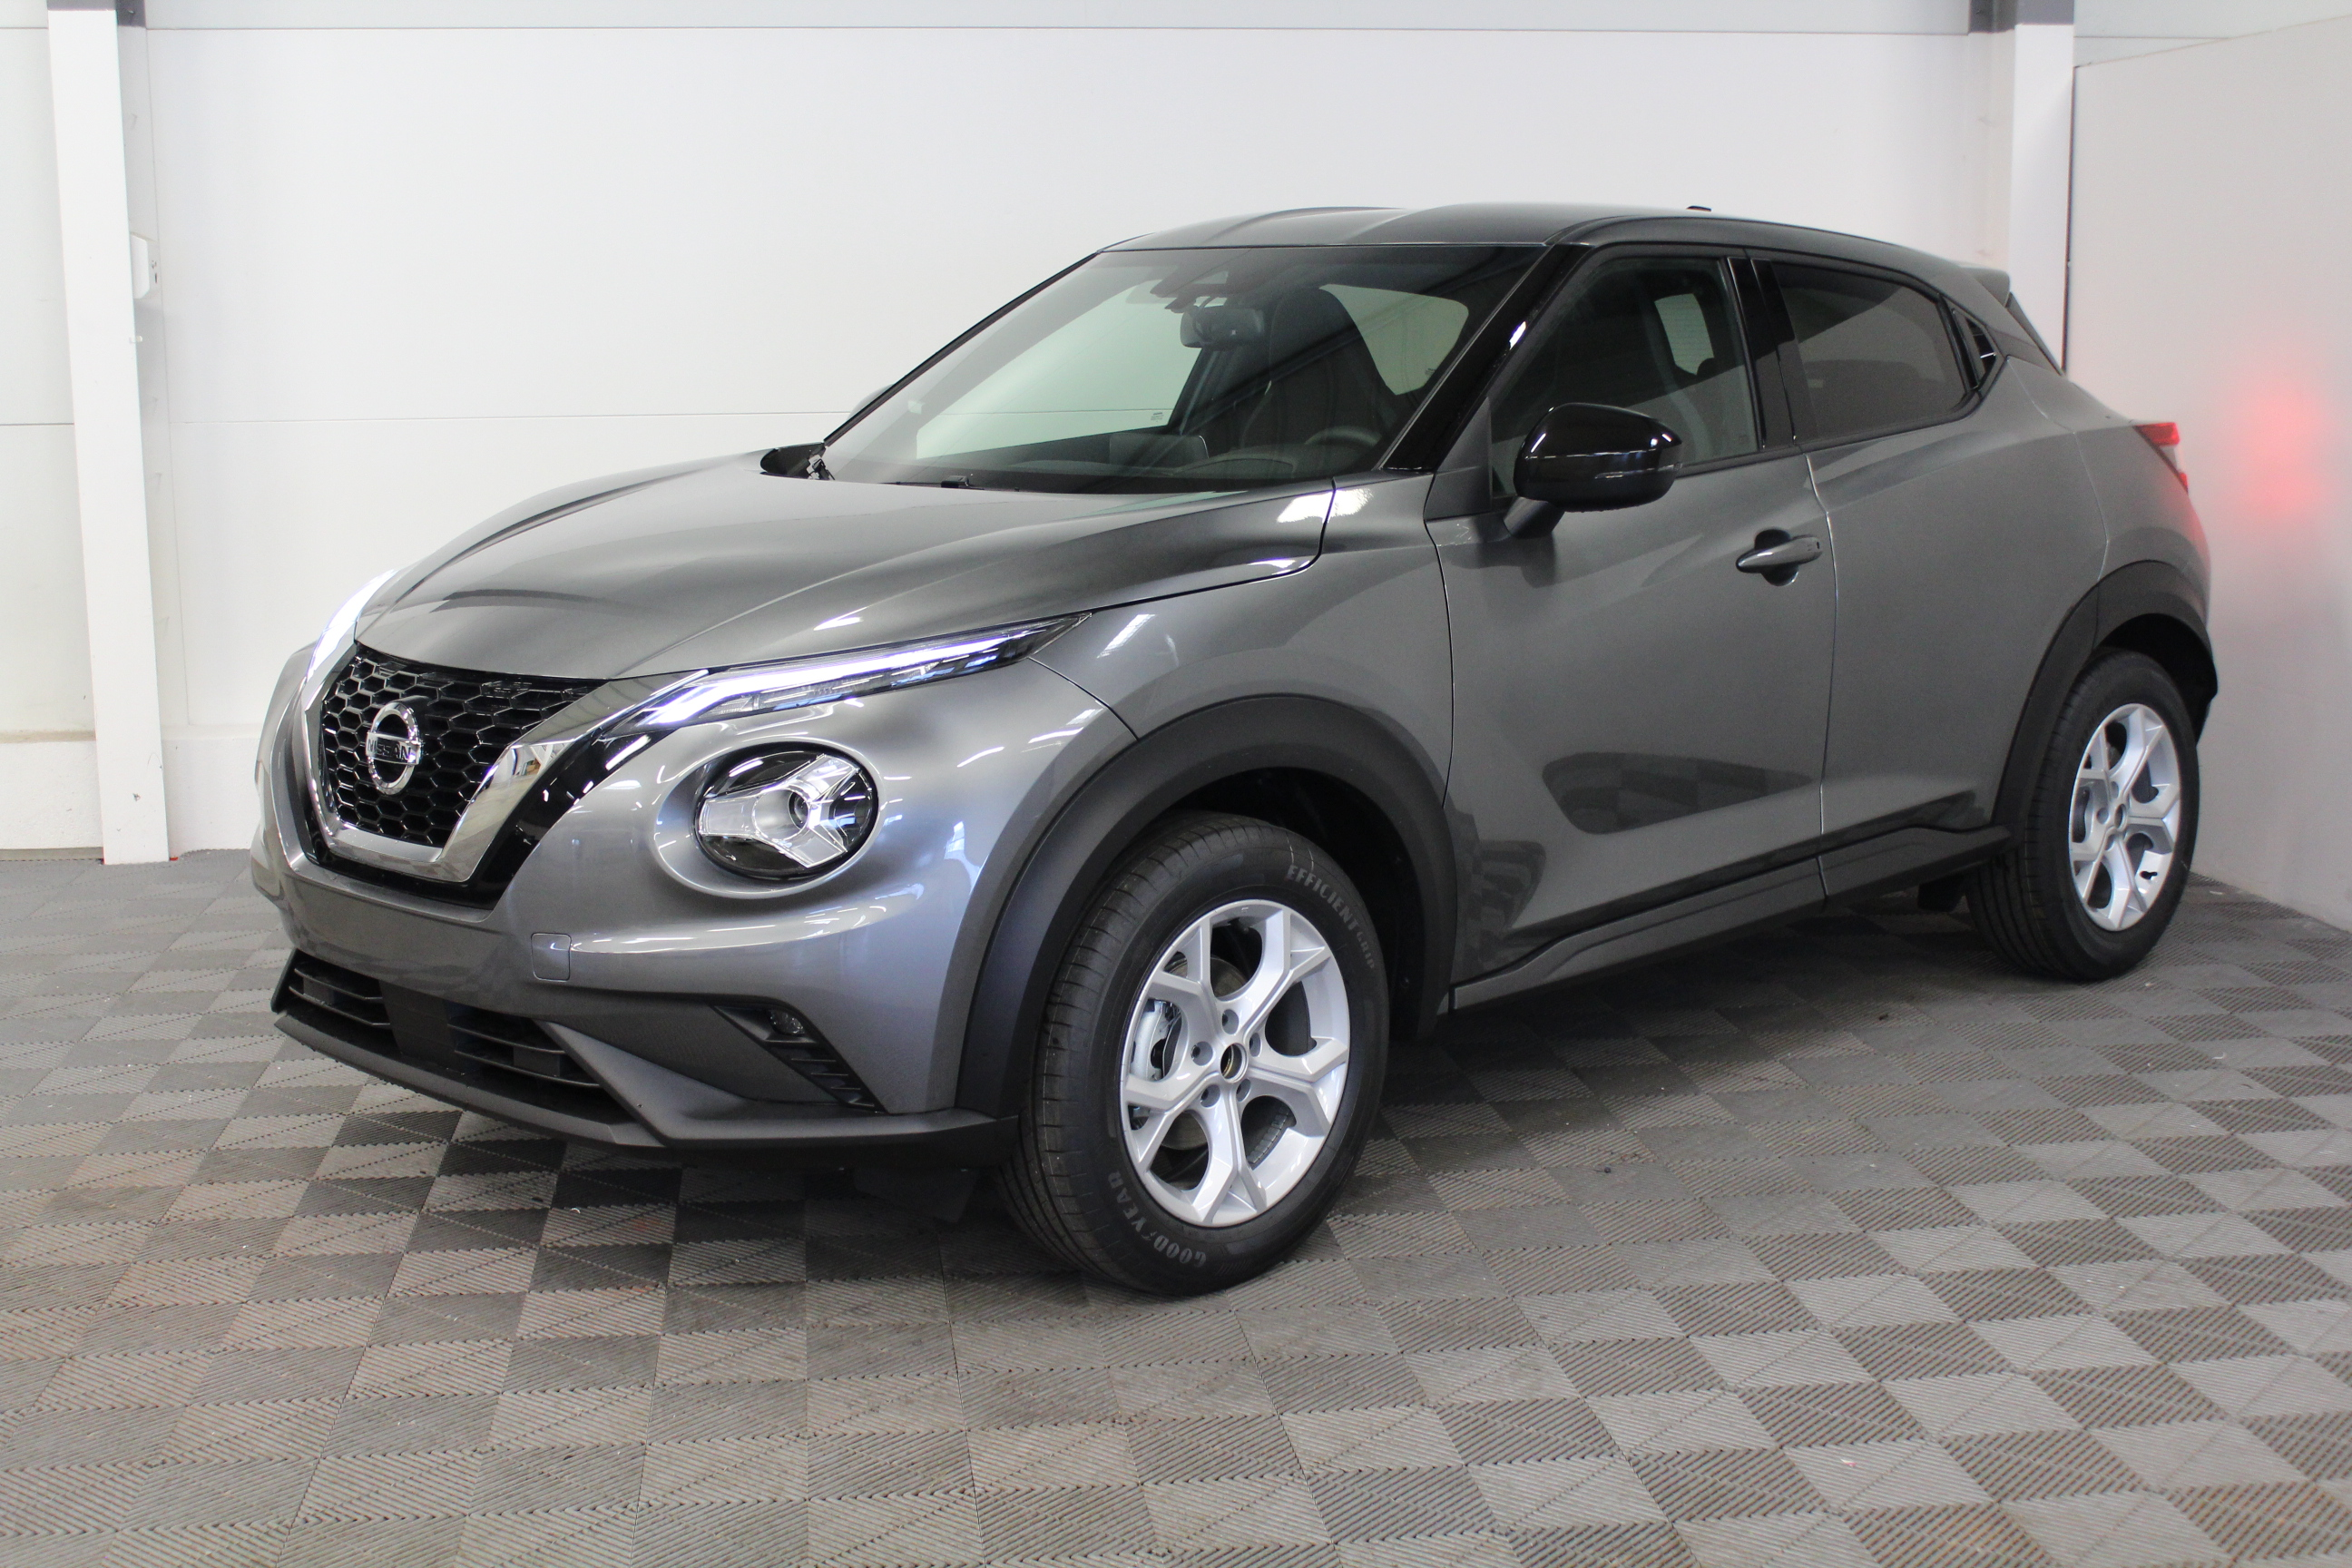 NISSAN JUKE 2021.5 DIG-T 114 N-Connecta d'occasion